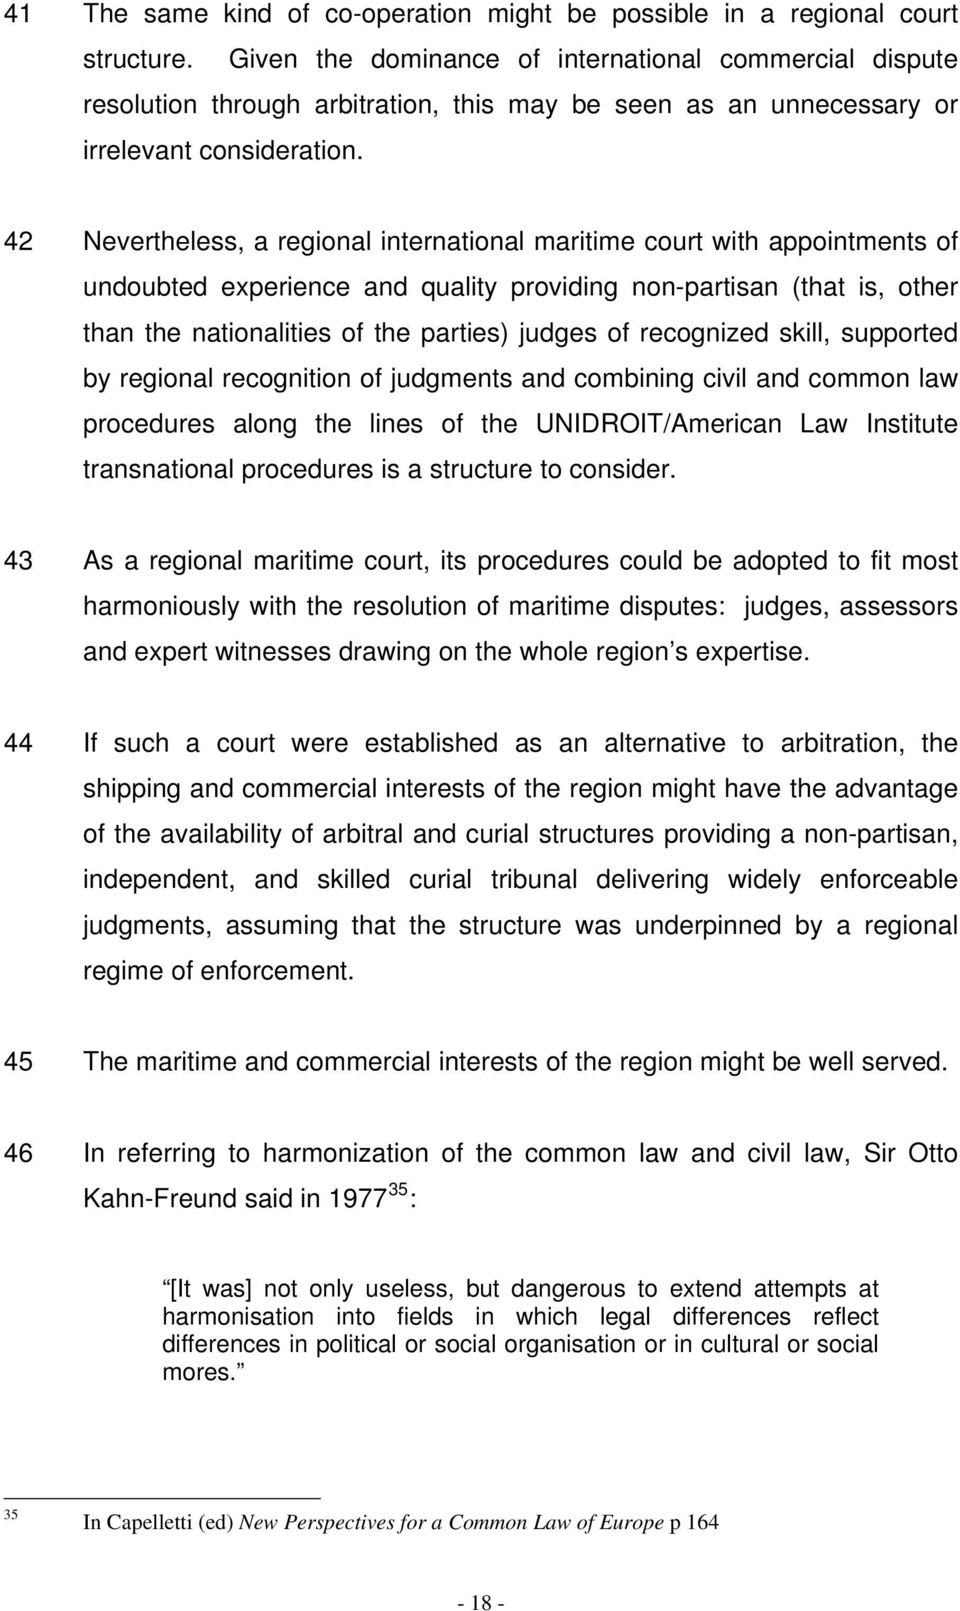 42 Nevertheless, a regional international maritime court with appointments of undoubted experience and quality providing non-partisan (that is, other than the nationalities of the parties) judges of